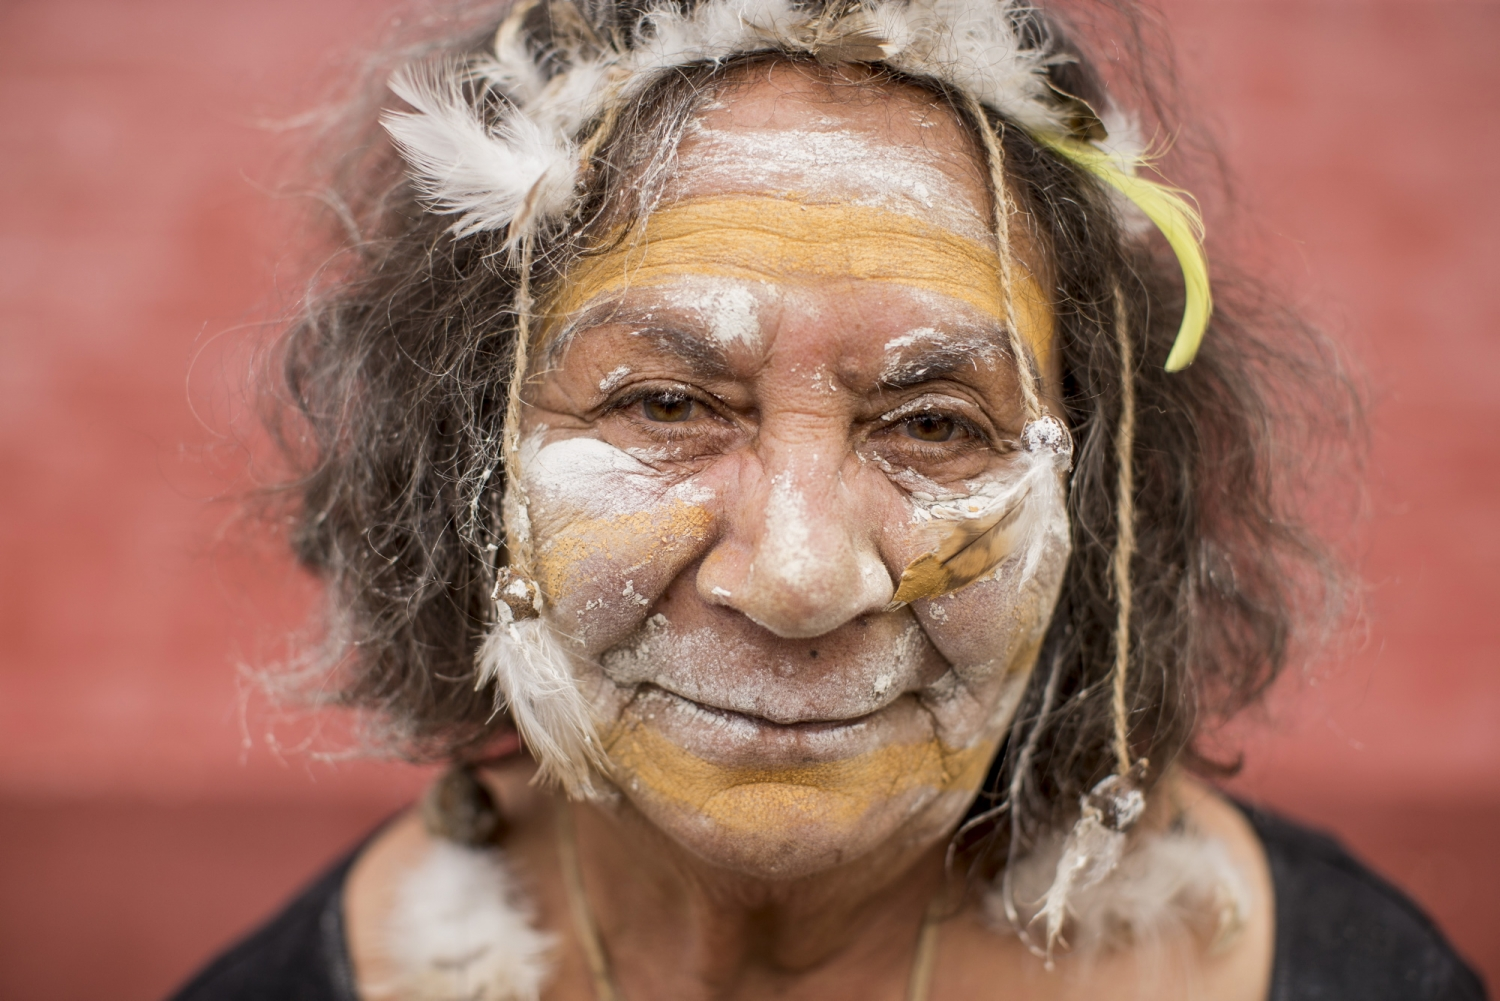 Older indigenous woman with face paint and feather hair adornments.